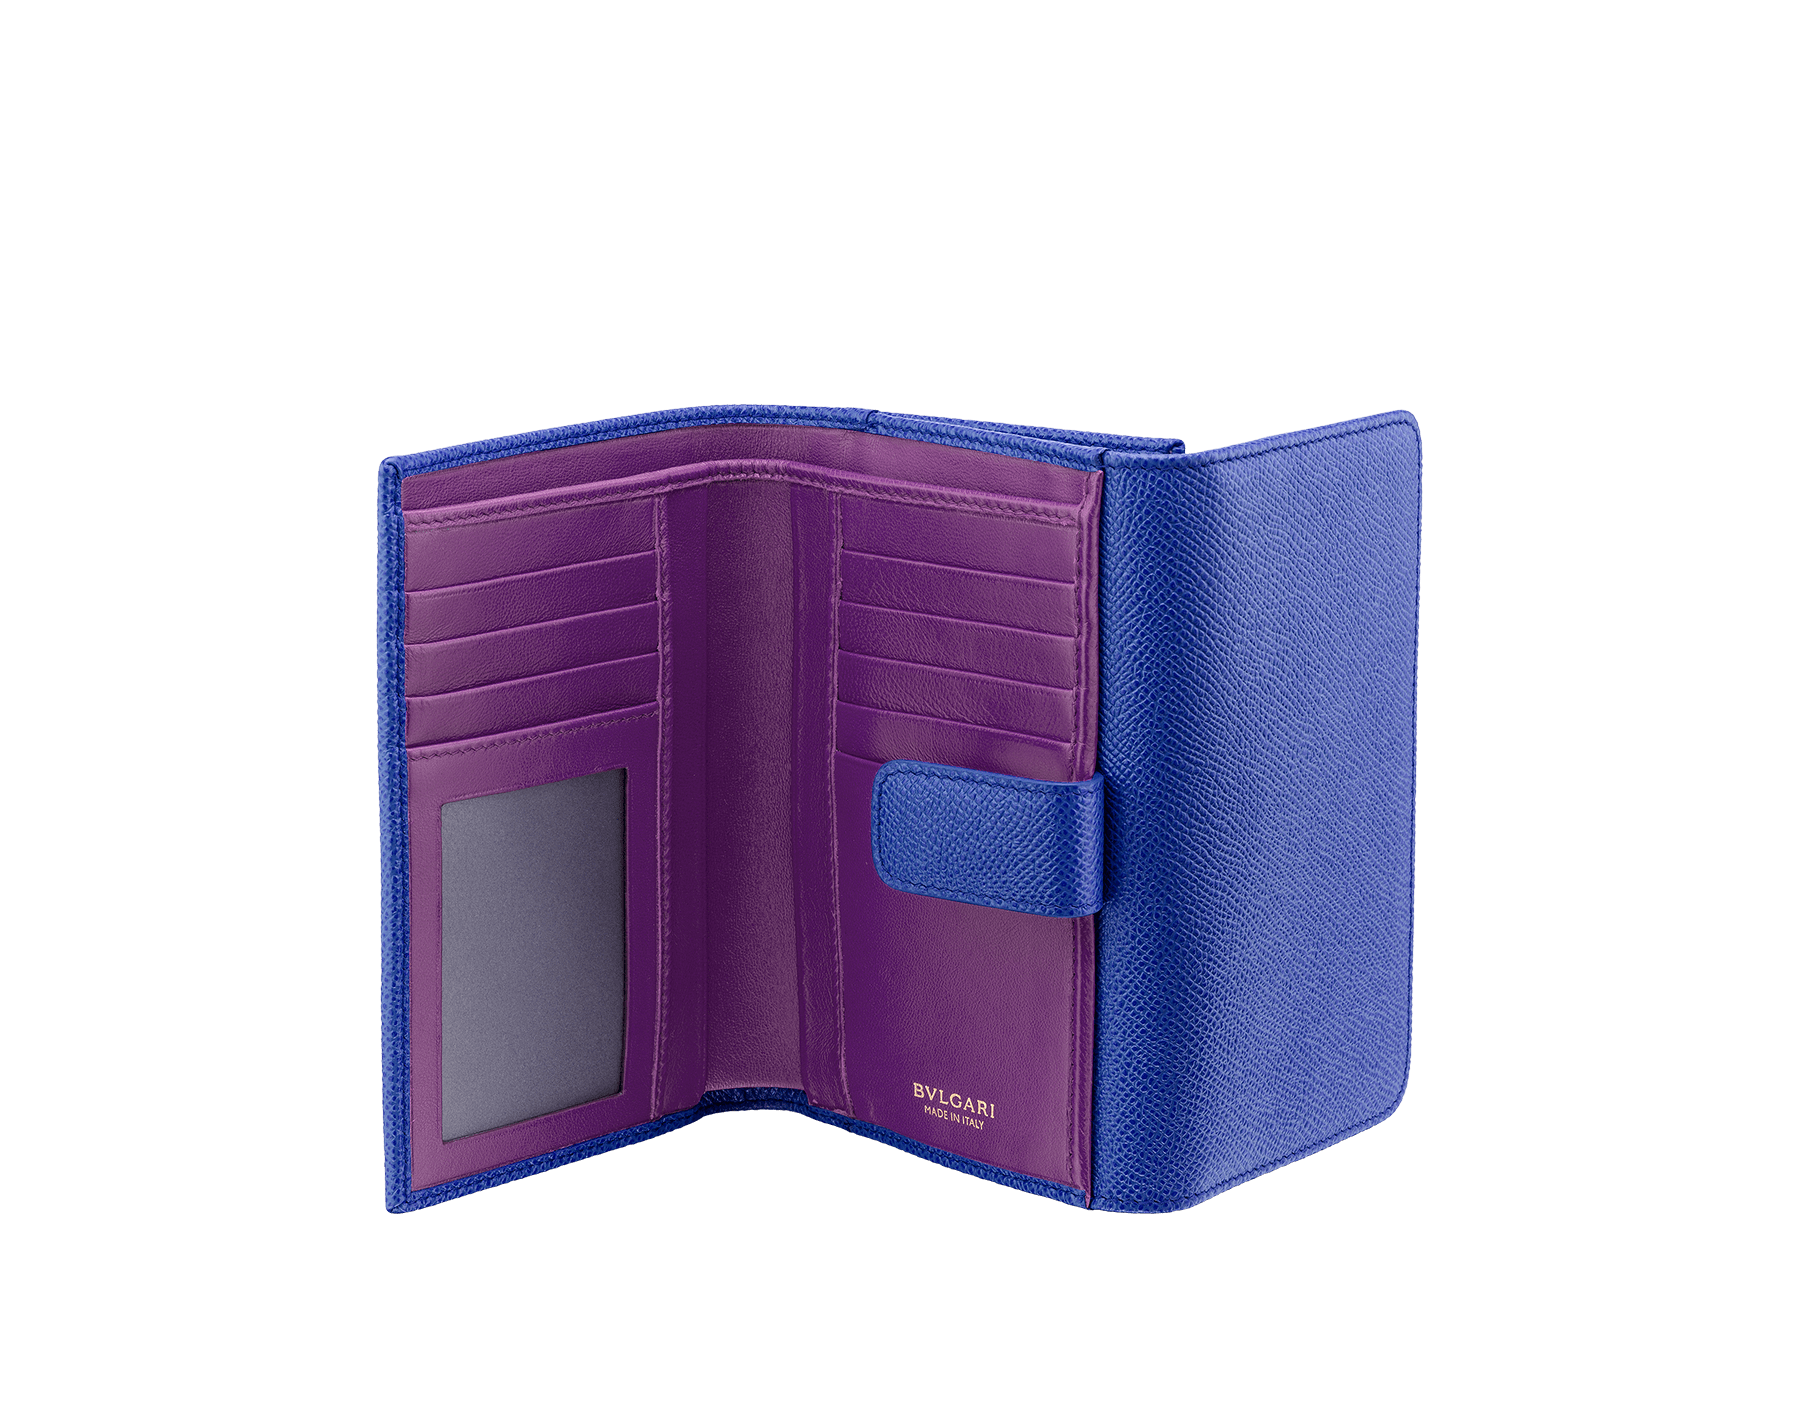 BVLGARI BVLGARI compact pochette in cobalt tourmaline grain calf leather and aster amethyst nappa leather. Iconic logo closure clip in light gold plated brass 287604 image 2